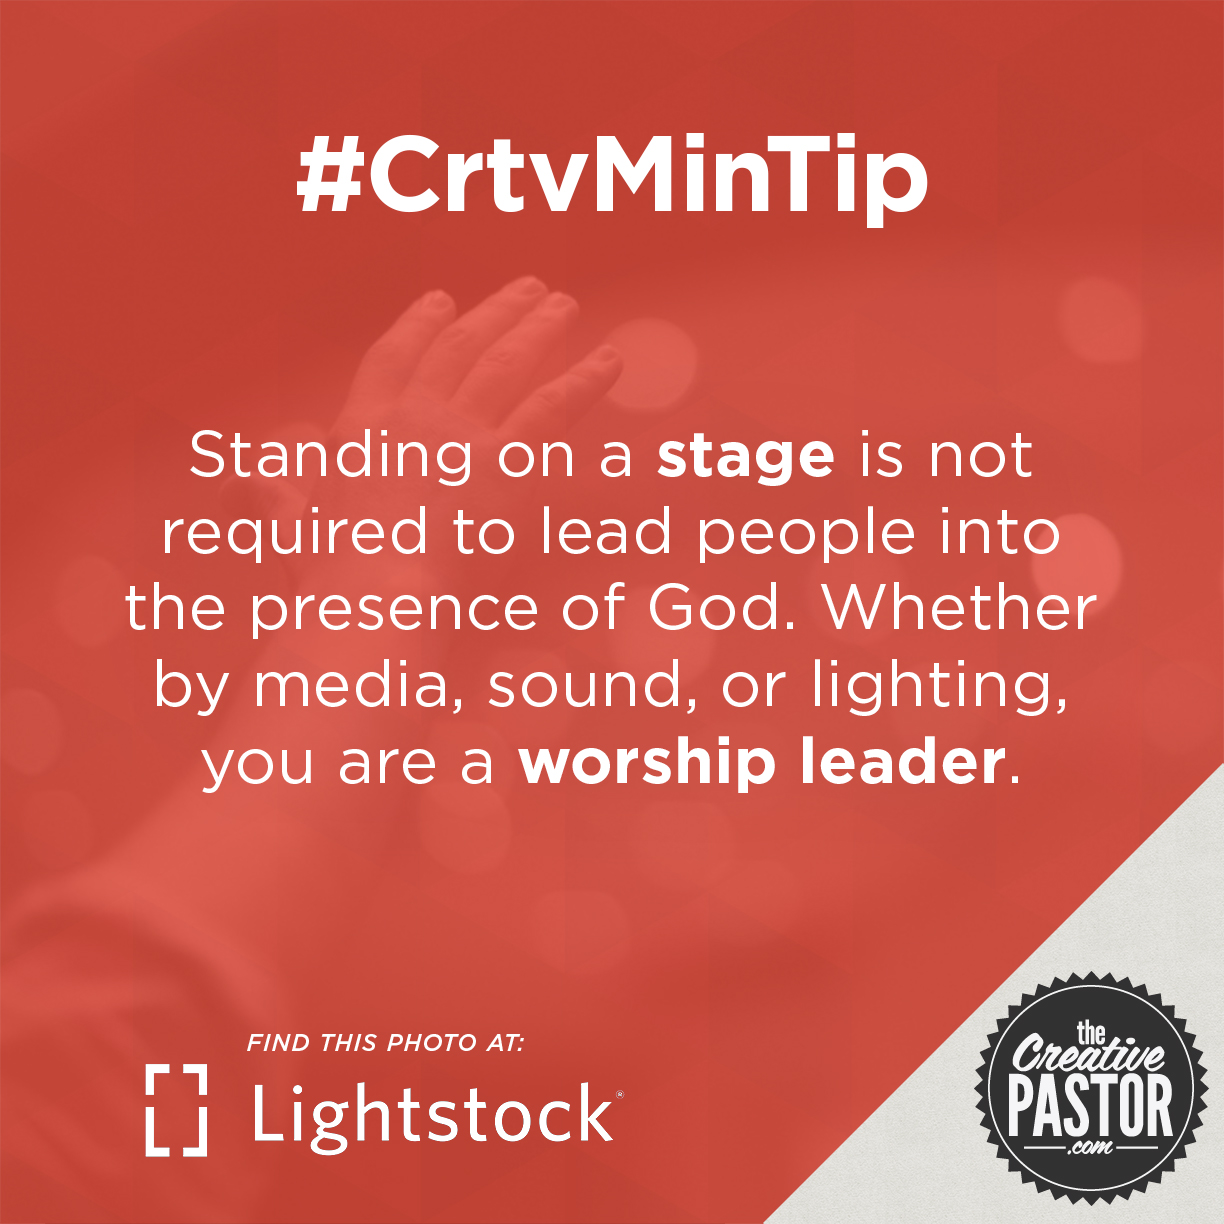 Standing on a stage is not required to lead people into the presence of God. Whether by media, sound, or lighting, you are a worship leader.